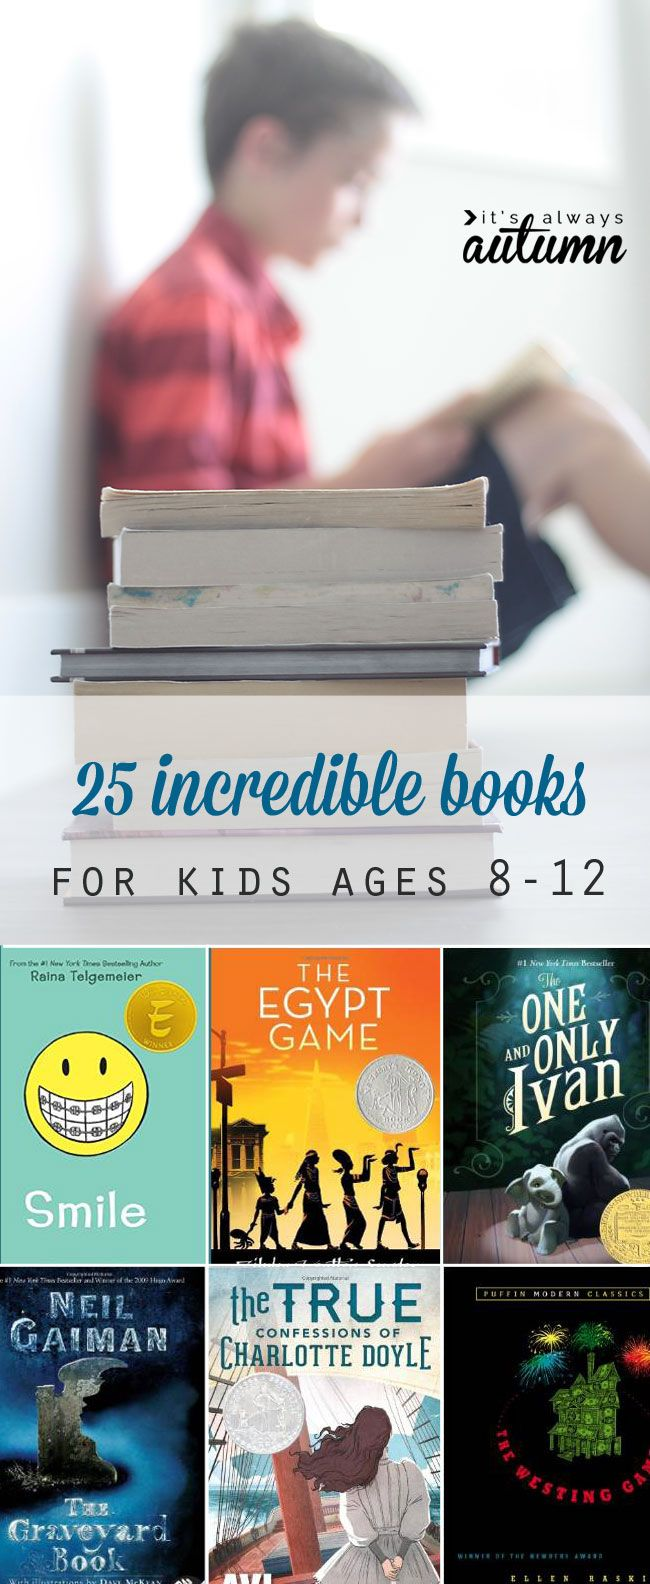 12 incredible books for kids ages 12 12 summer reading list ...